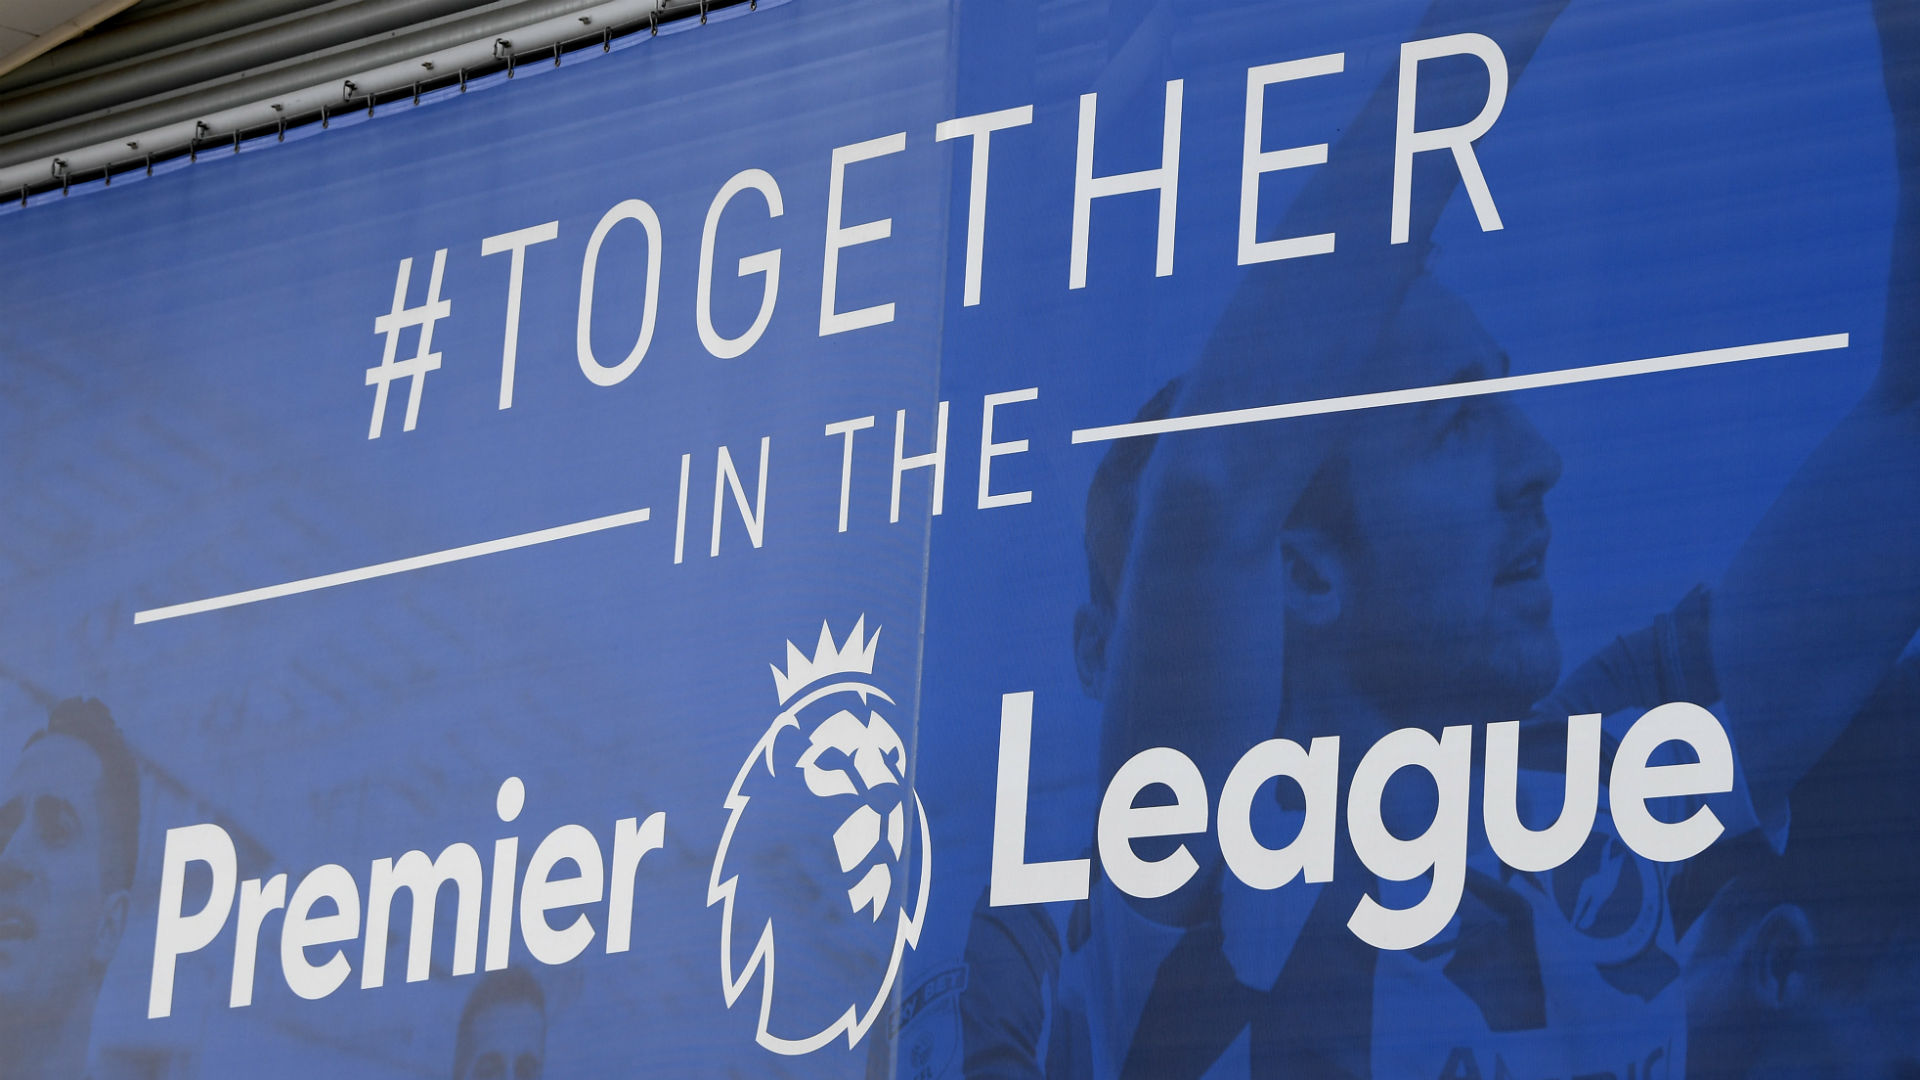 Premier League should consider completing season in Europe, says Neville